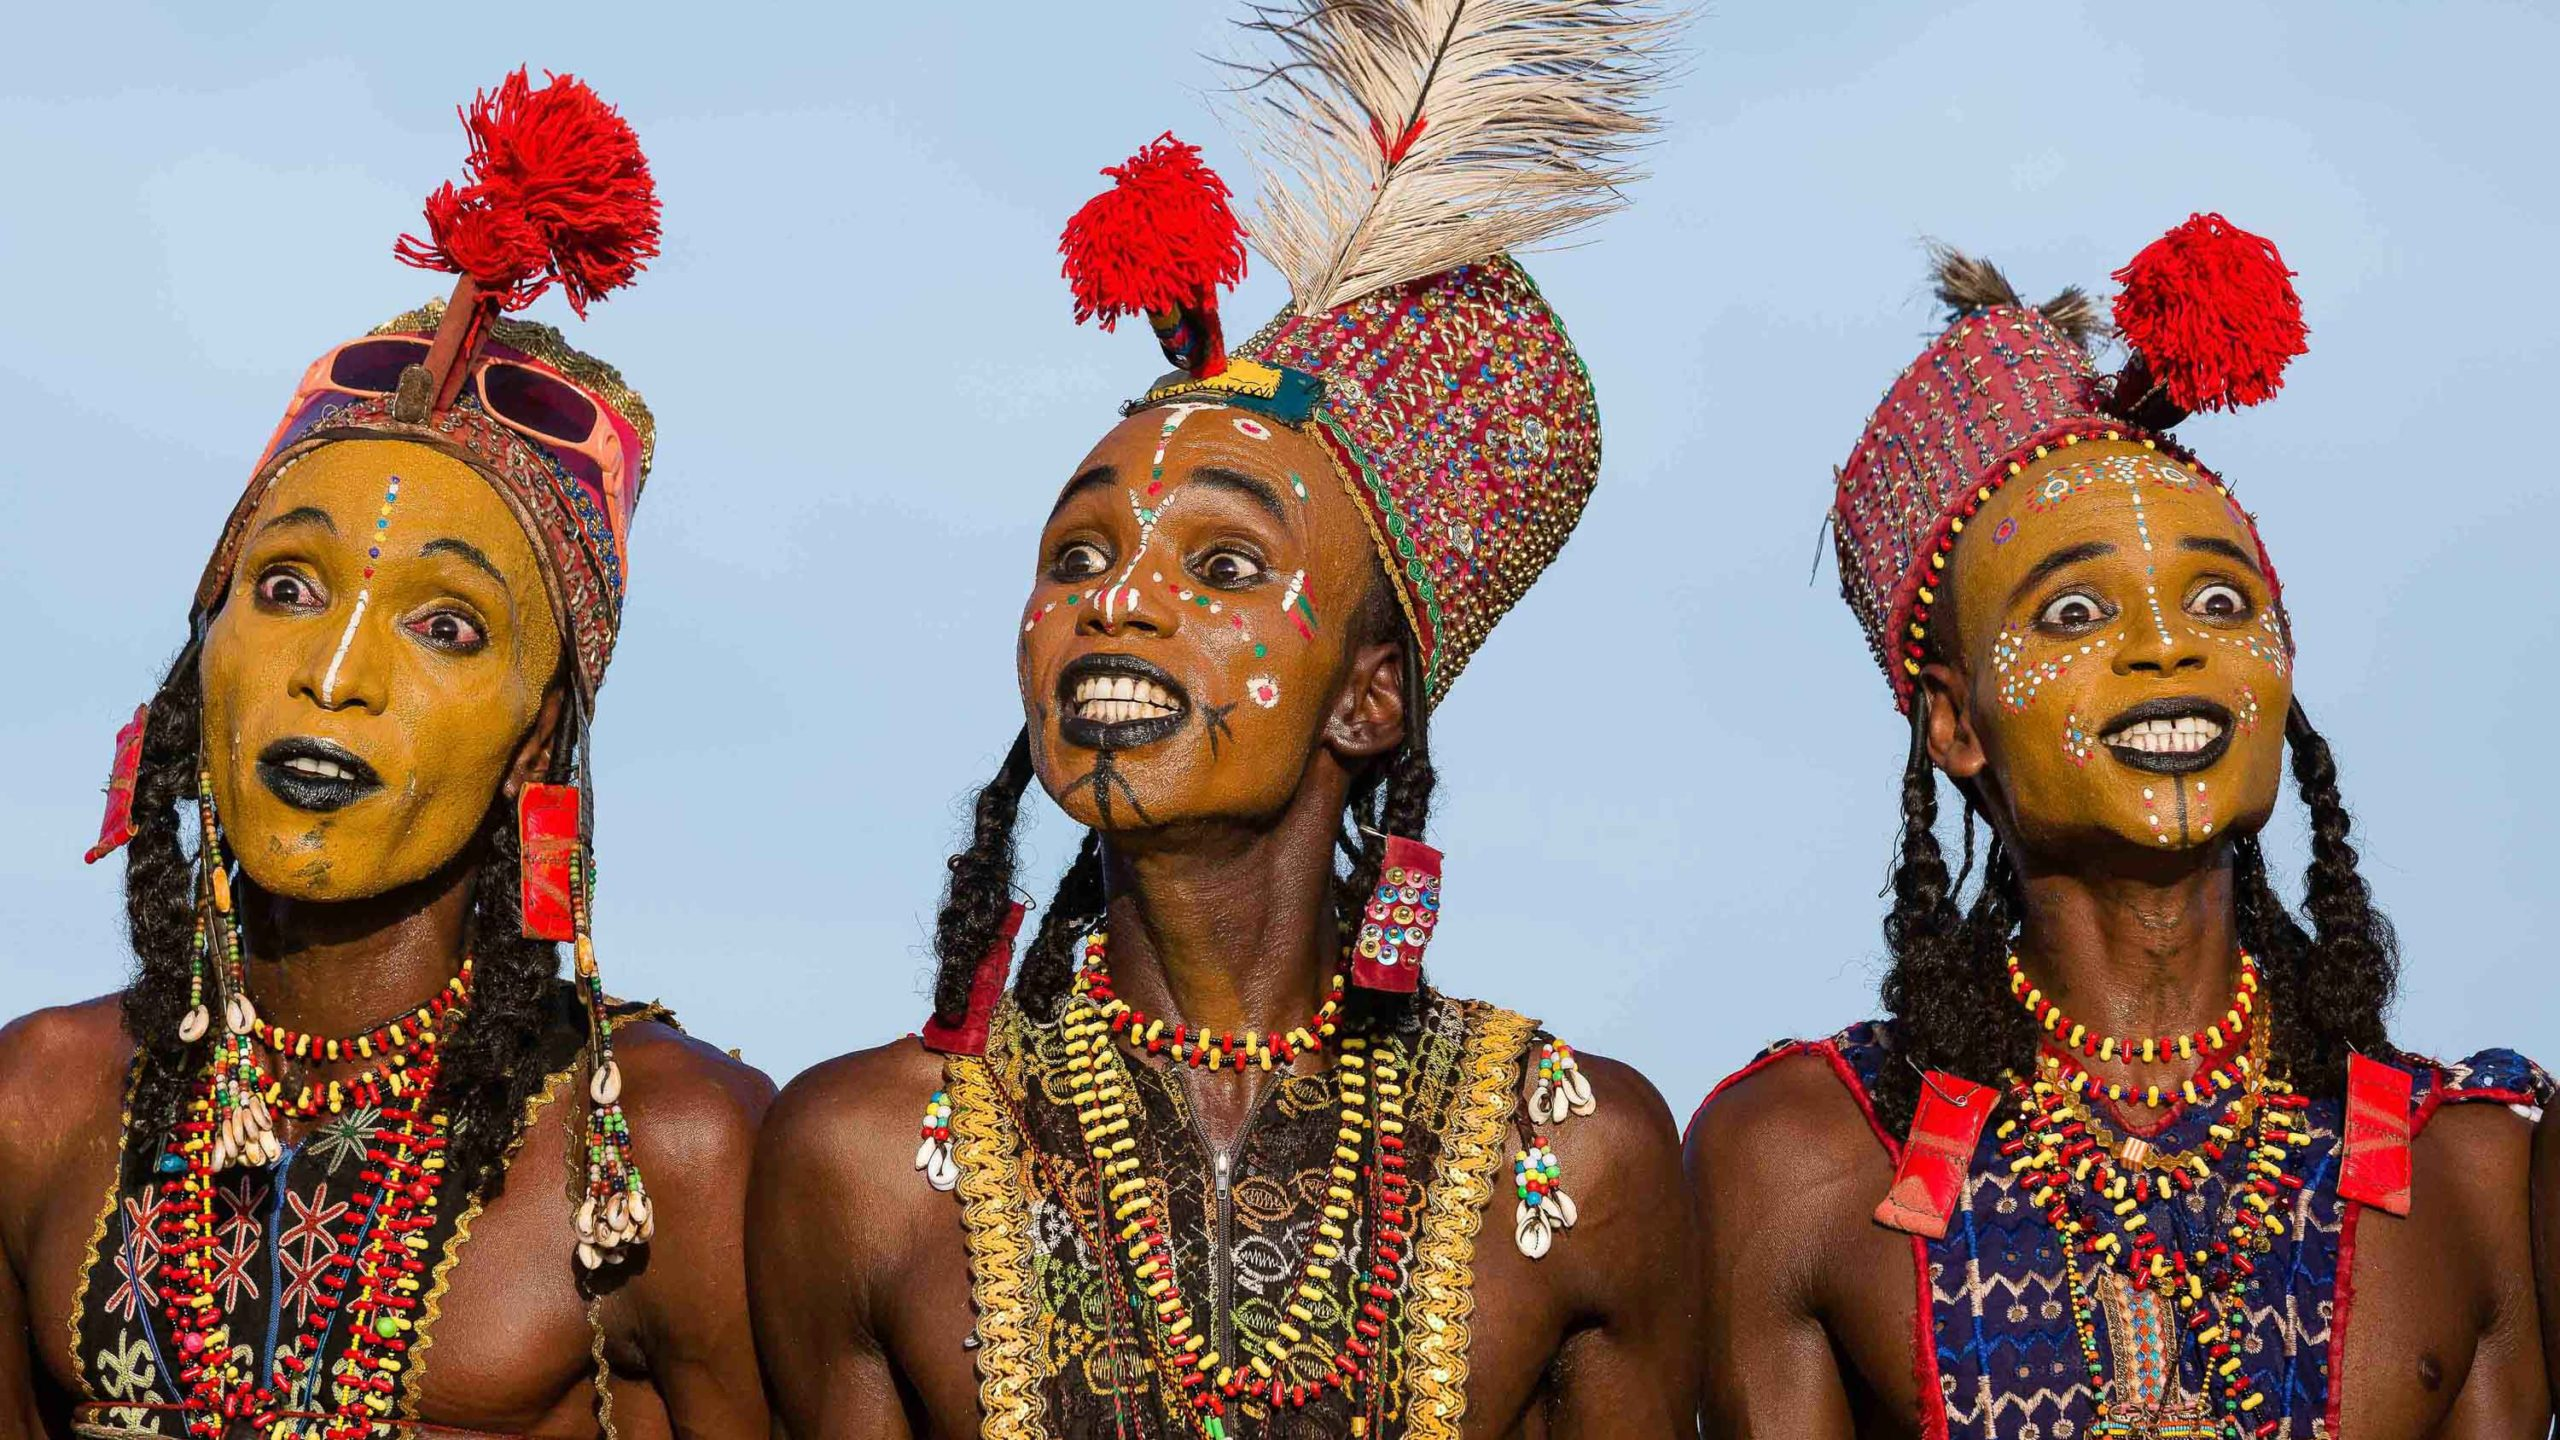 Gerewol Festival' The Wife-Stealing Festival Of The Wodaabe Tribe